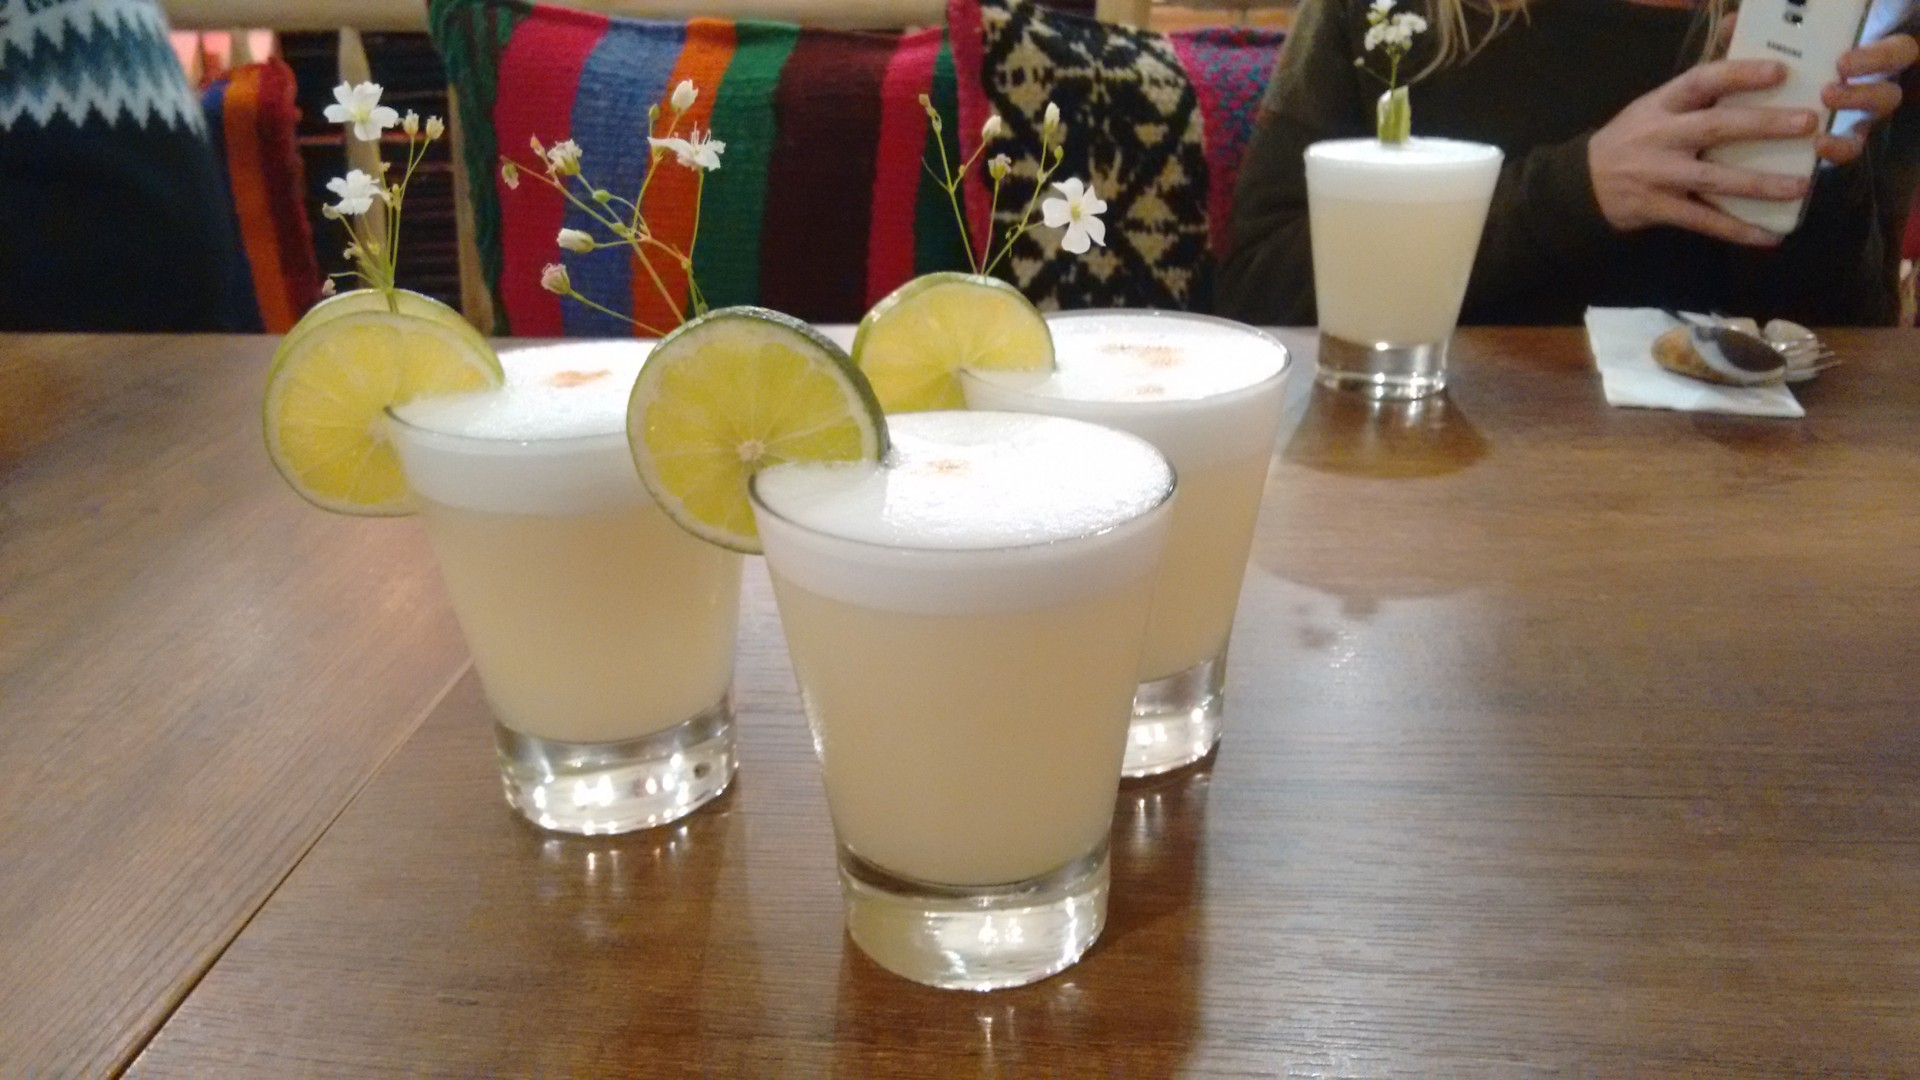 First Peruvian pisco sours. Not all for me.